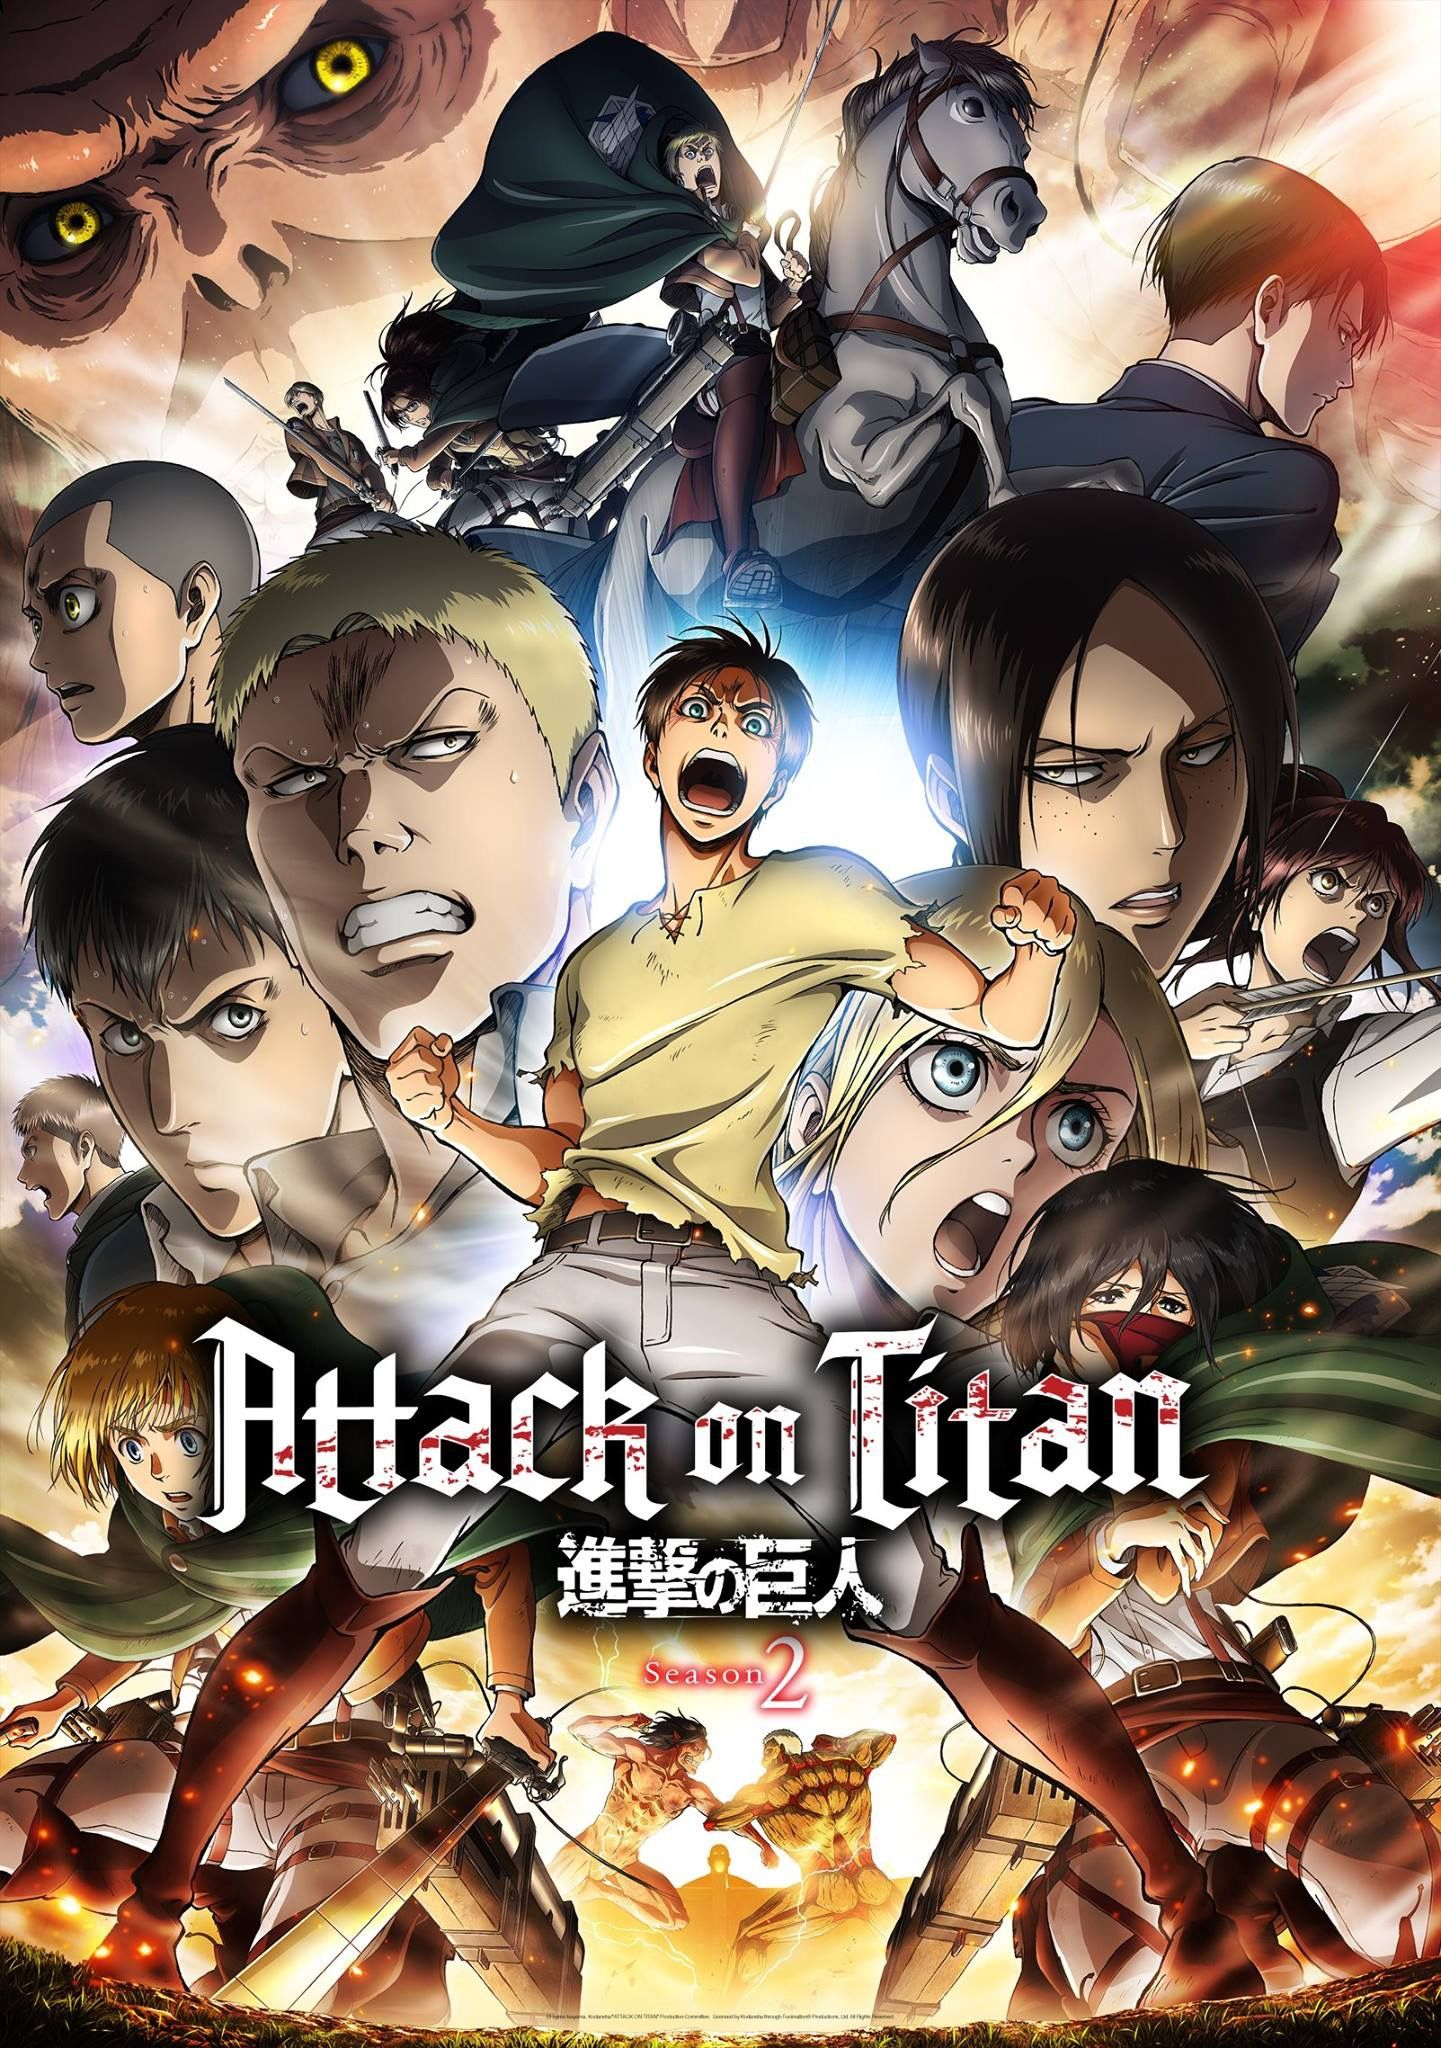 New poster for season 2 of Attack on Titan. (Jean on the